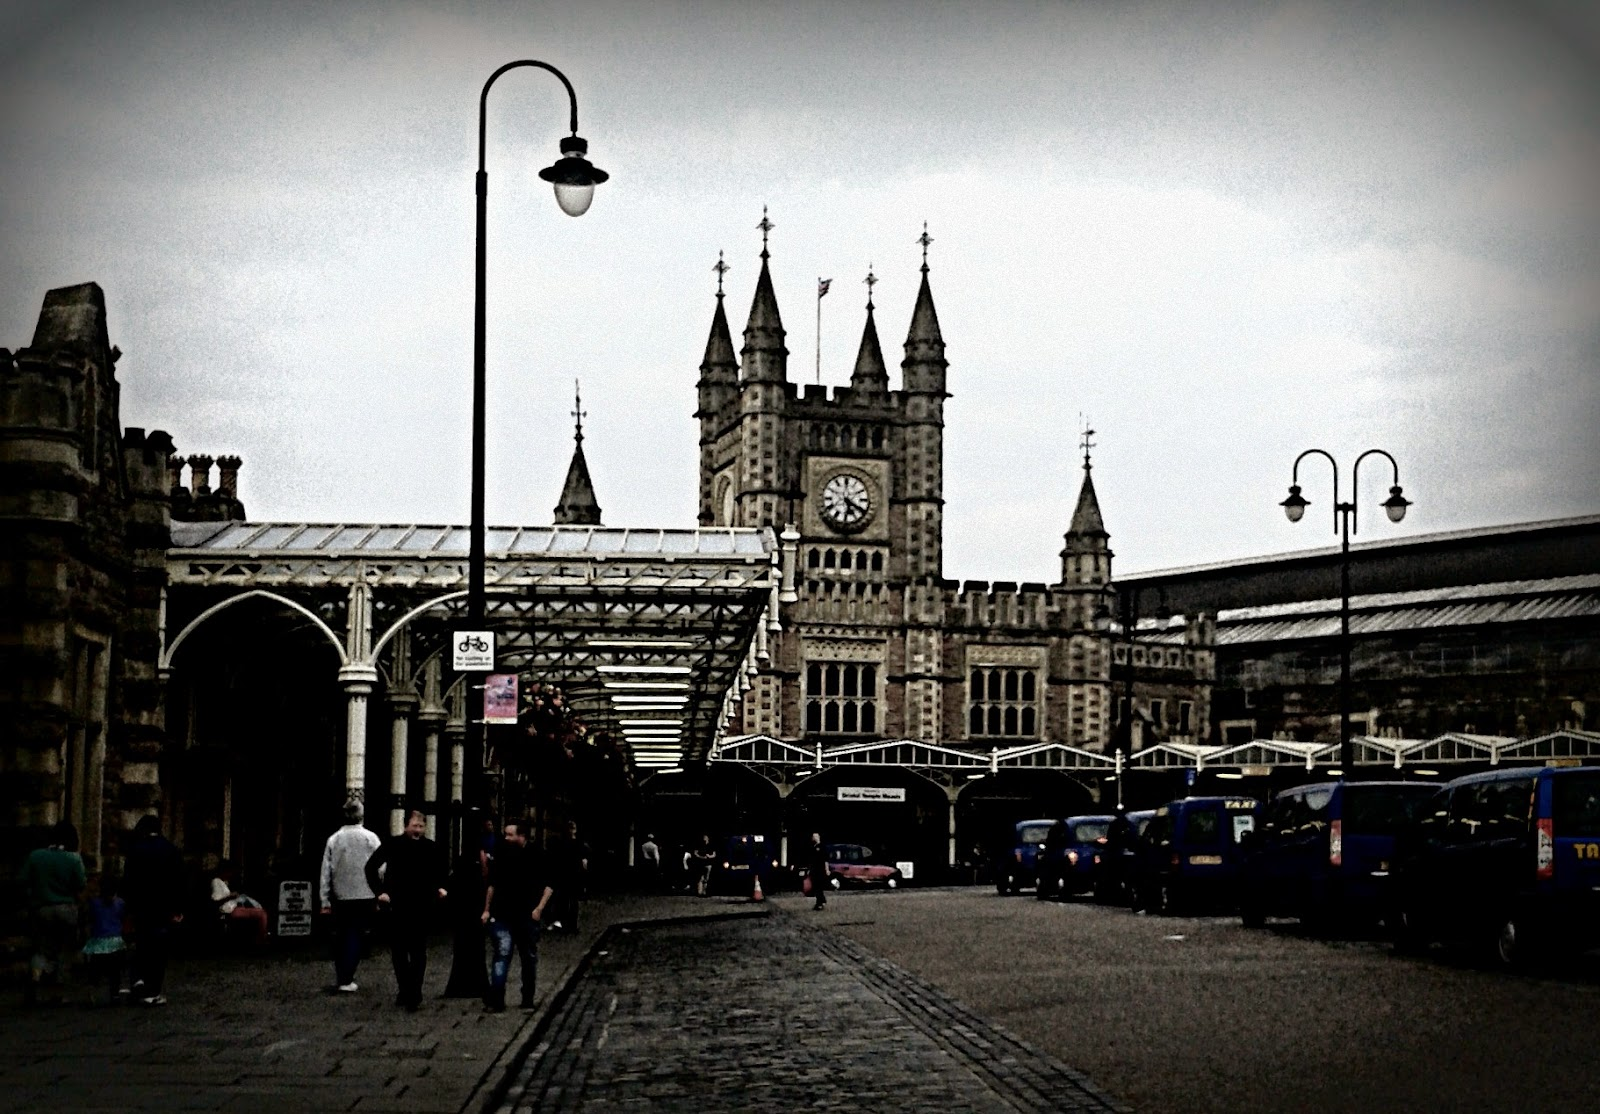 Project 365 #38 day 263 - Bristol Temple Meads